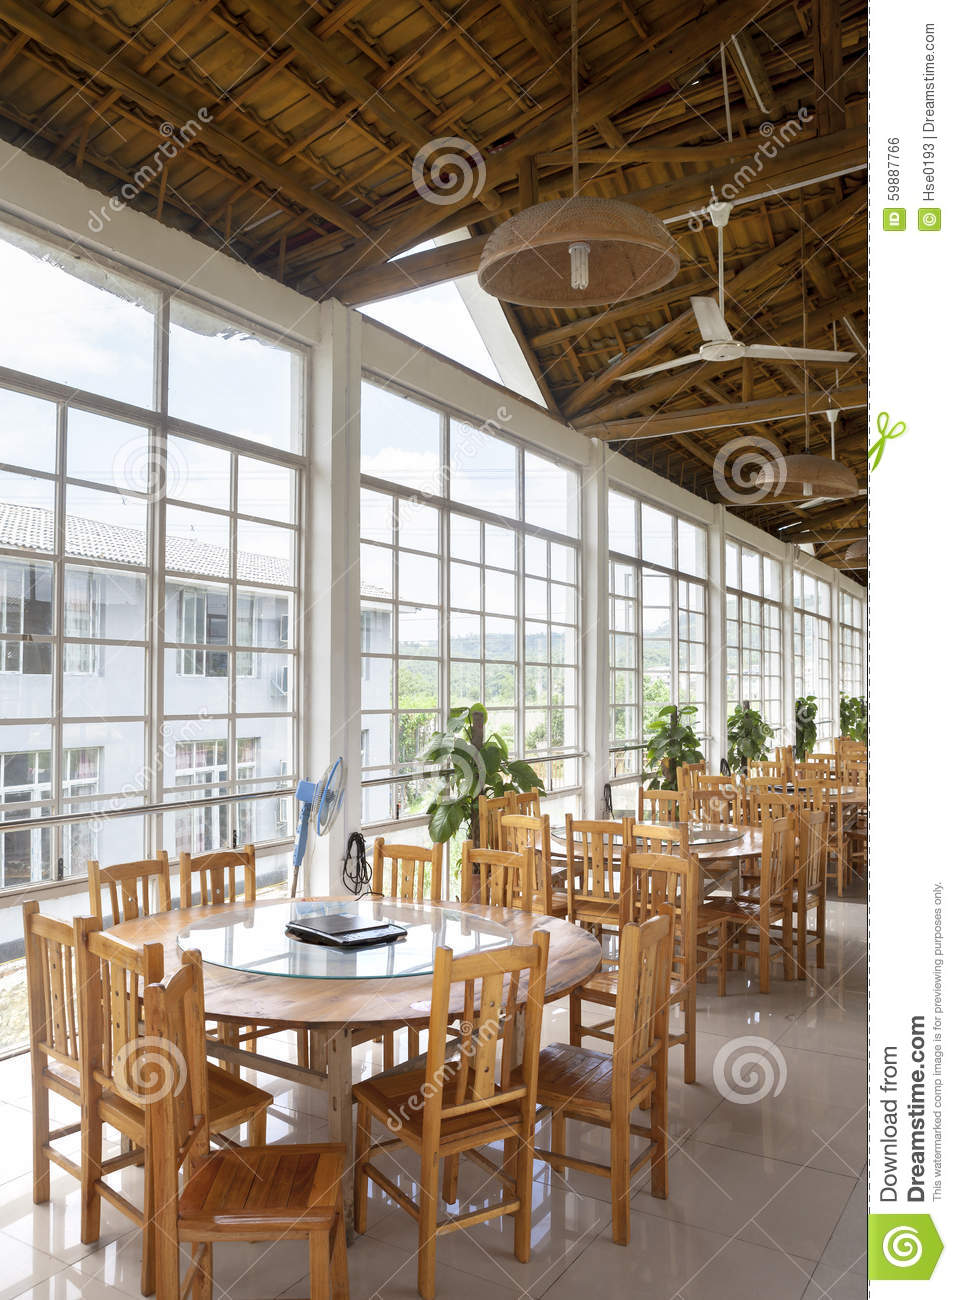 A Country Style Restaurant Stock Photo Image Of Asian